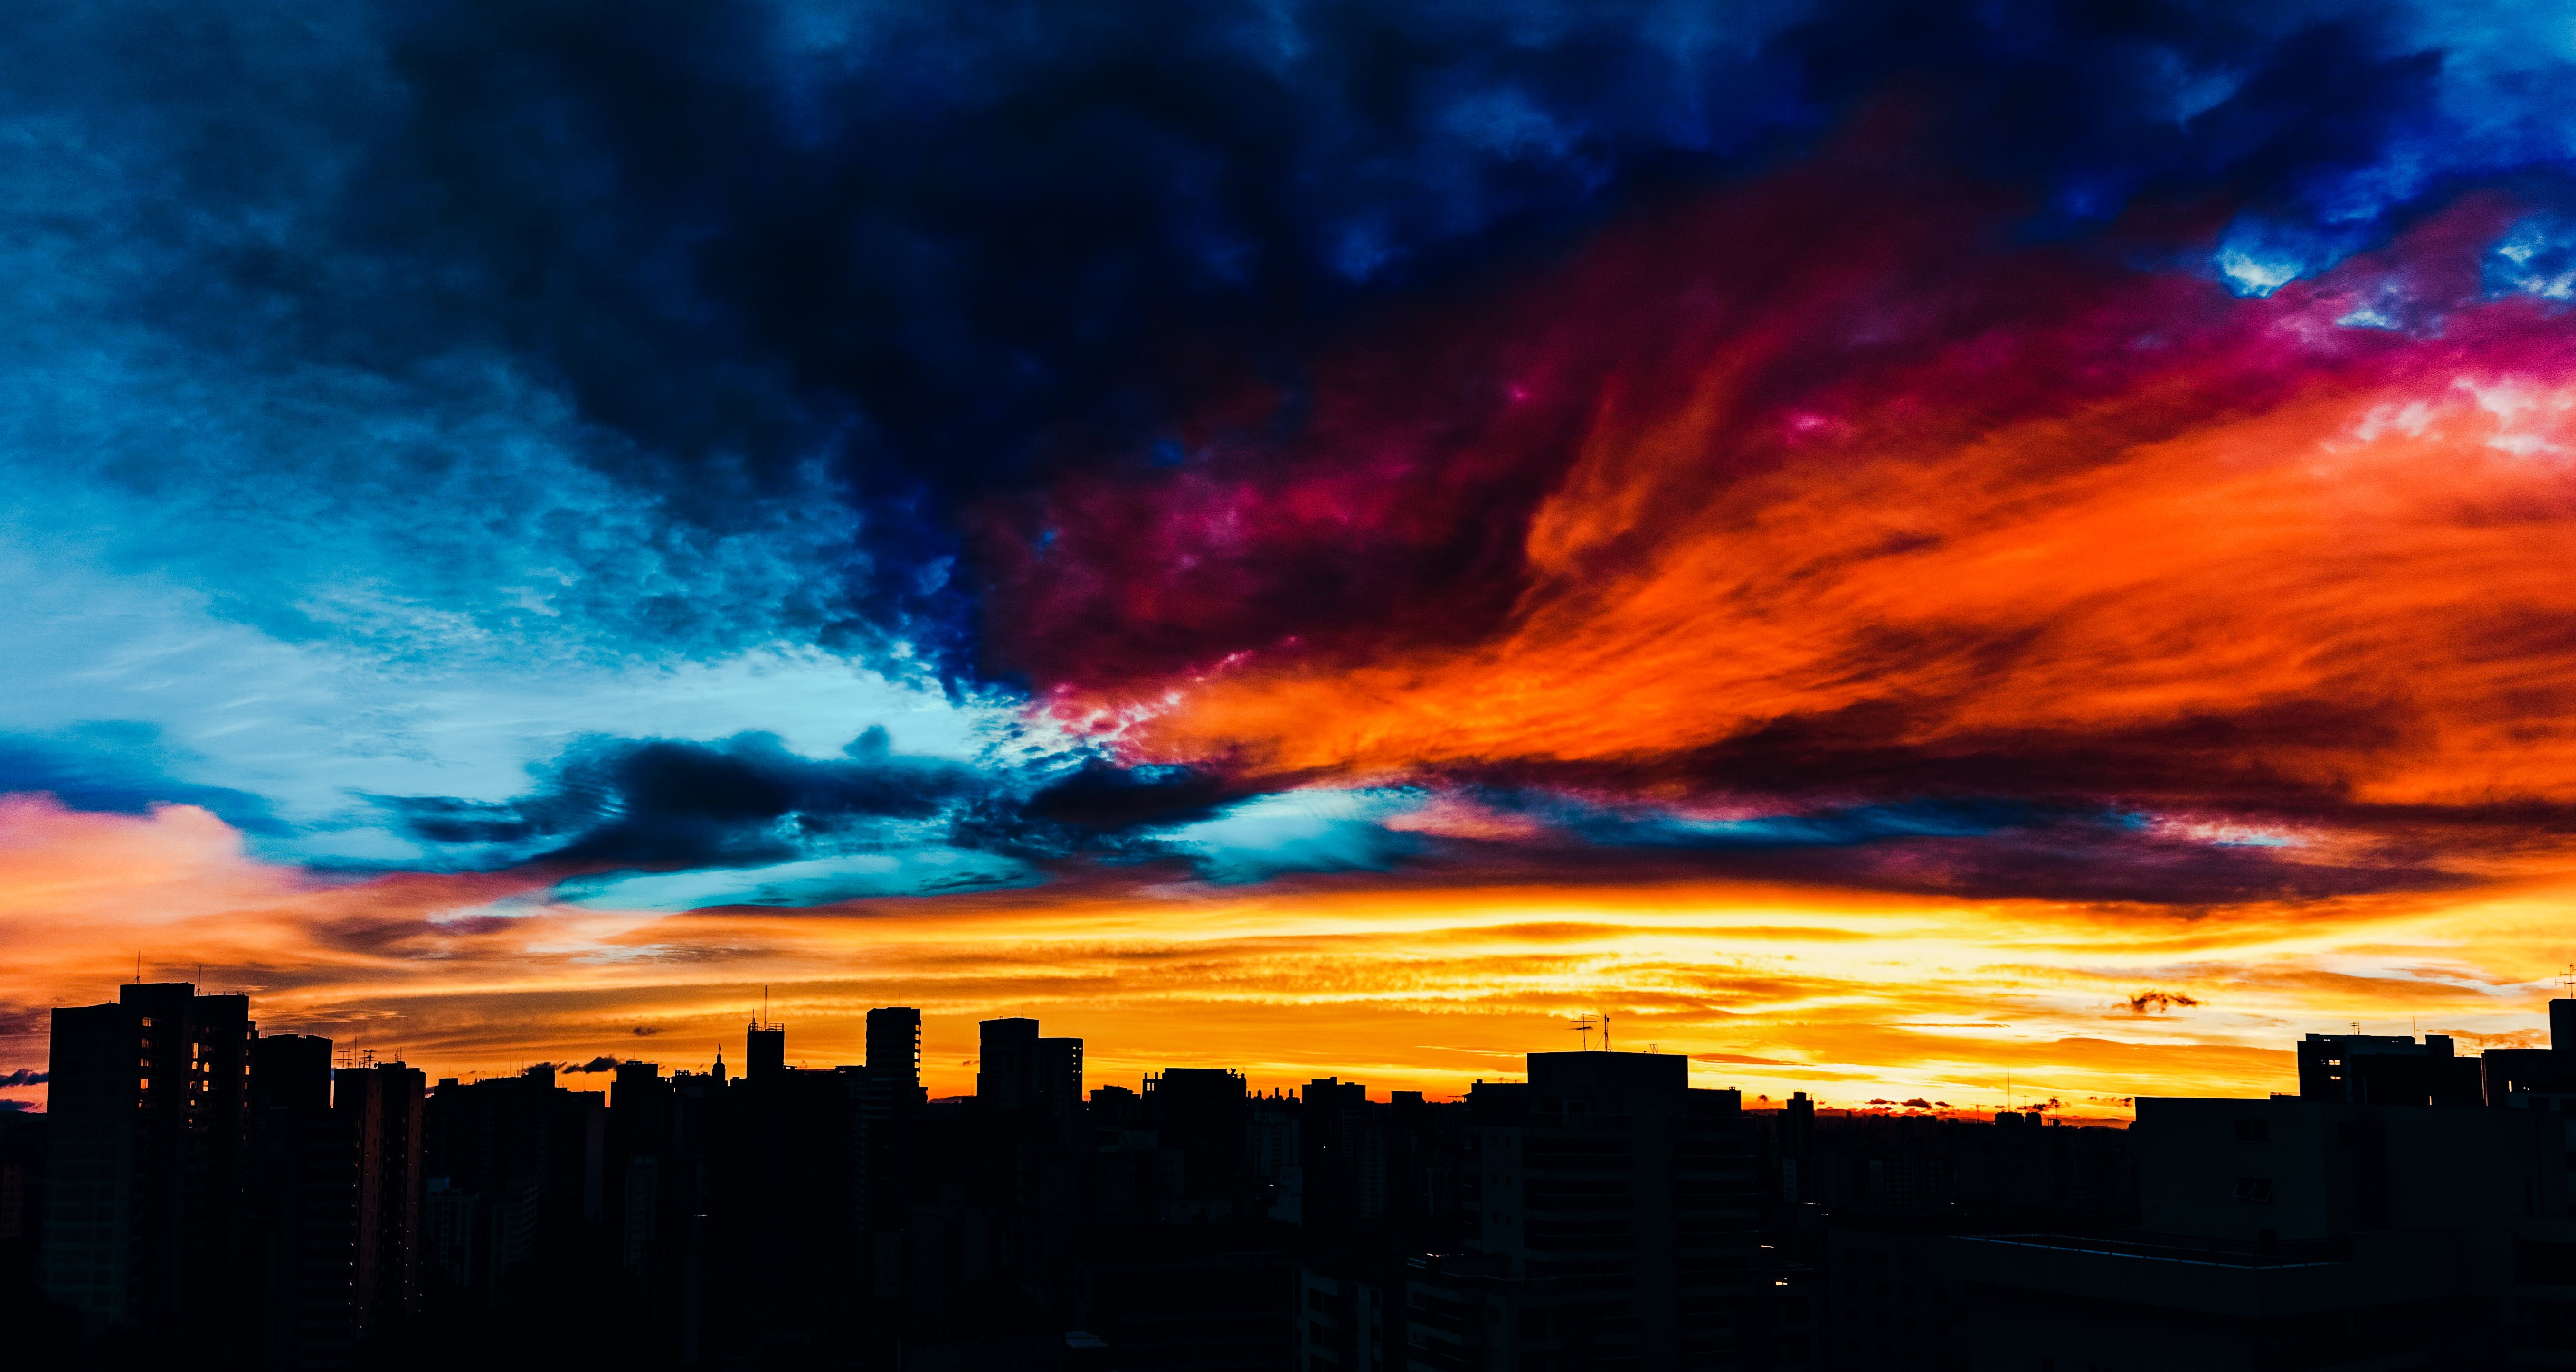 Free stock photo of city scape, colorful, dramatic sky, skyscape